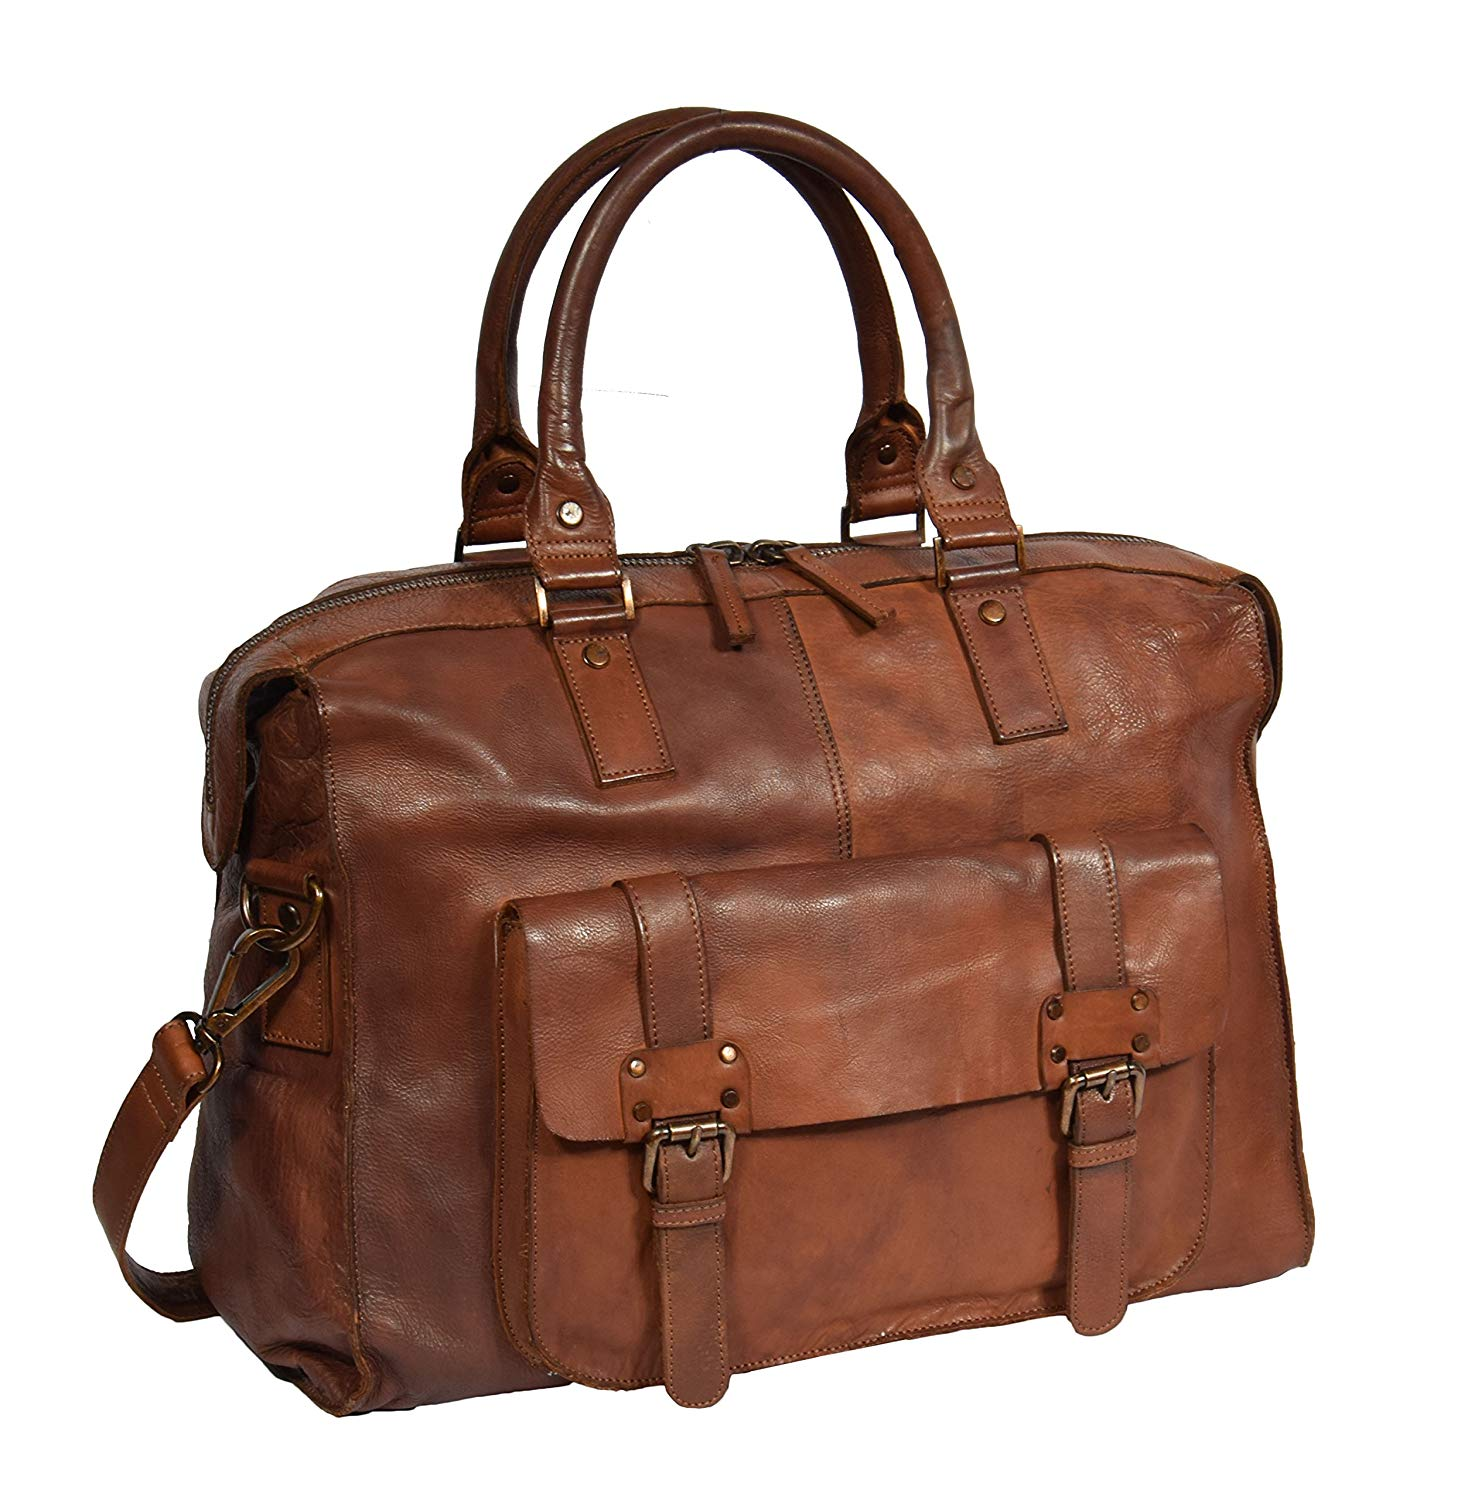 Real Leather Weekend Holdall Rust Brown Vintage Travel Cabin Overnight Bag Bali